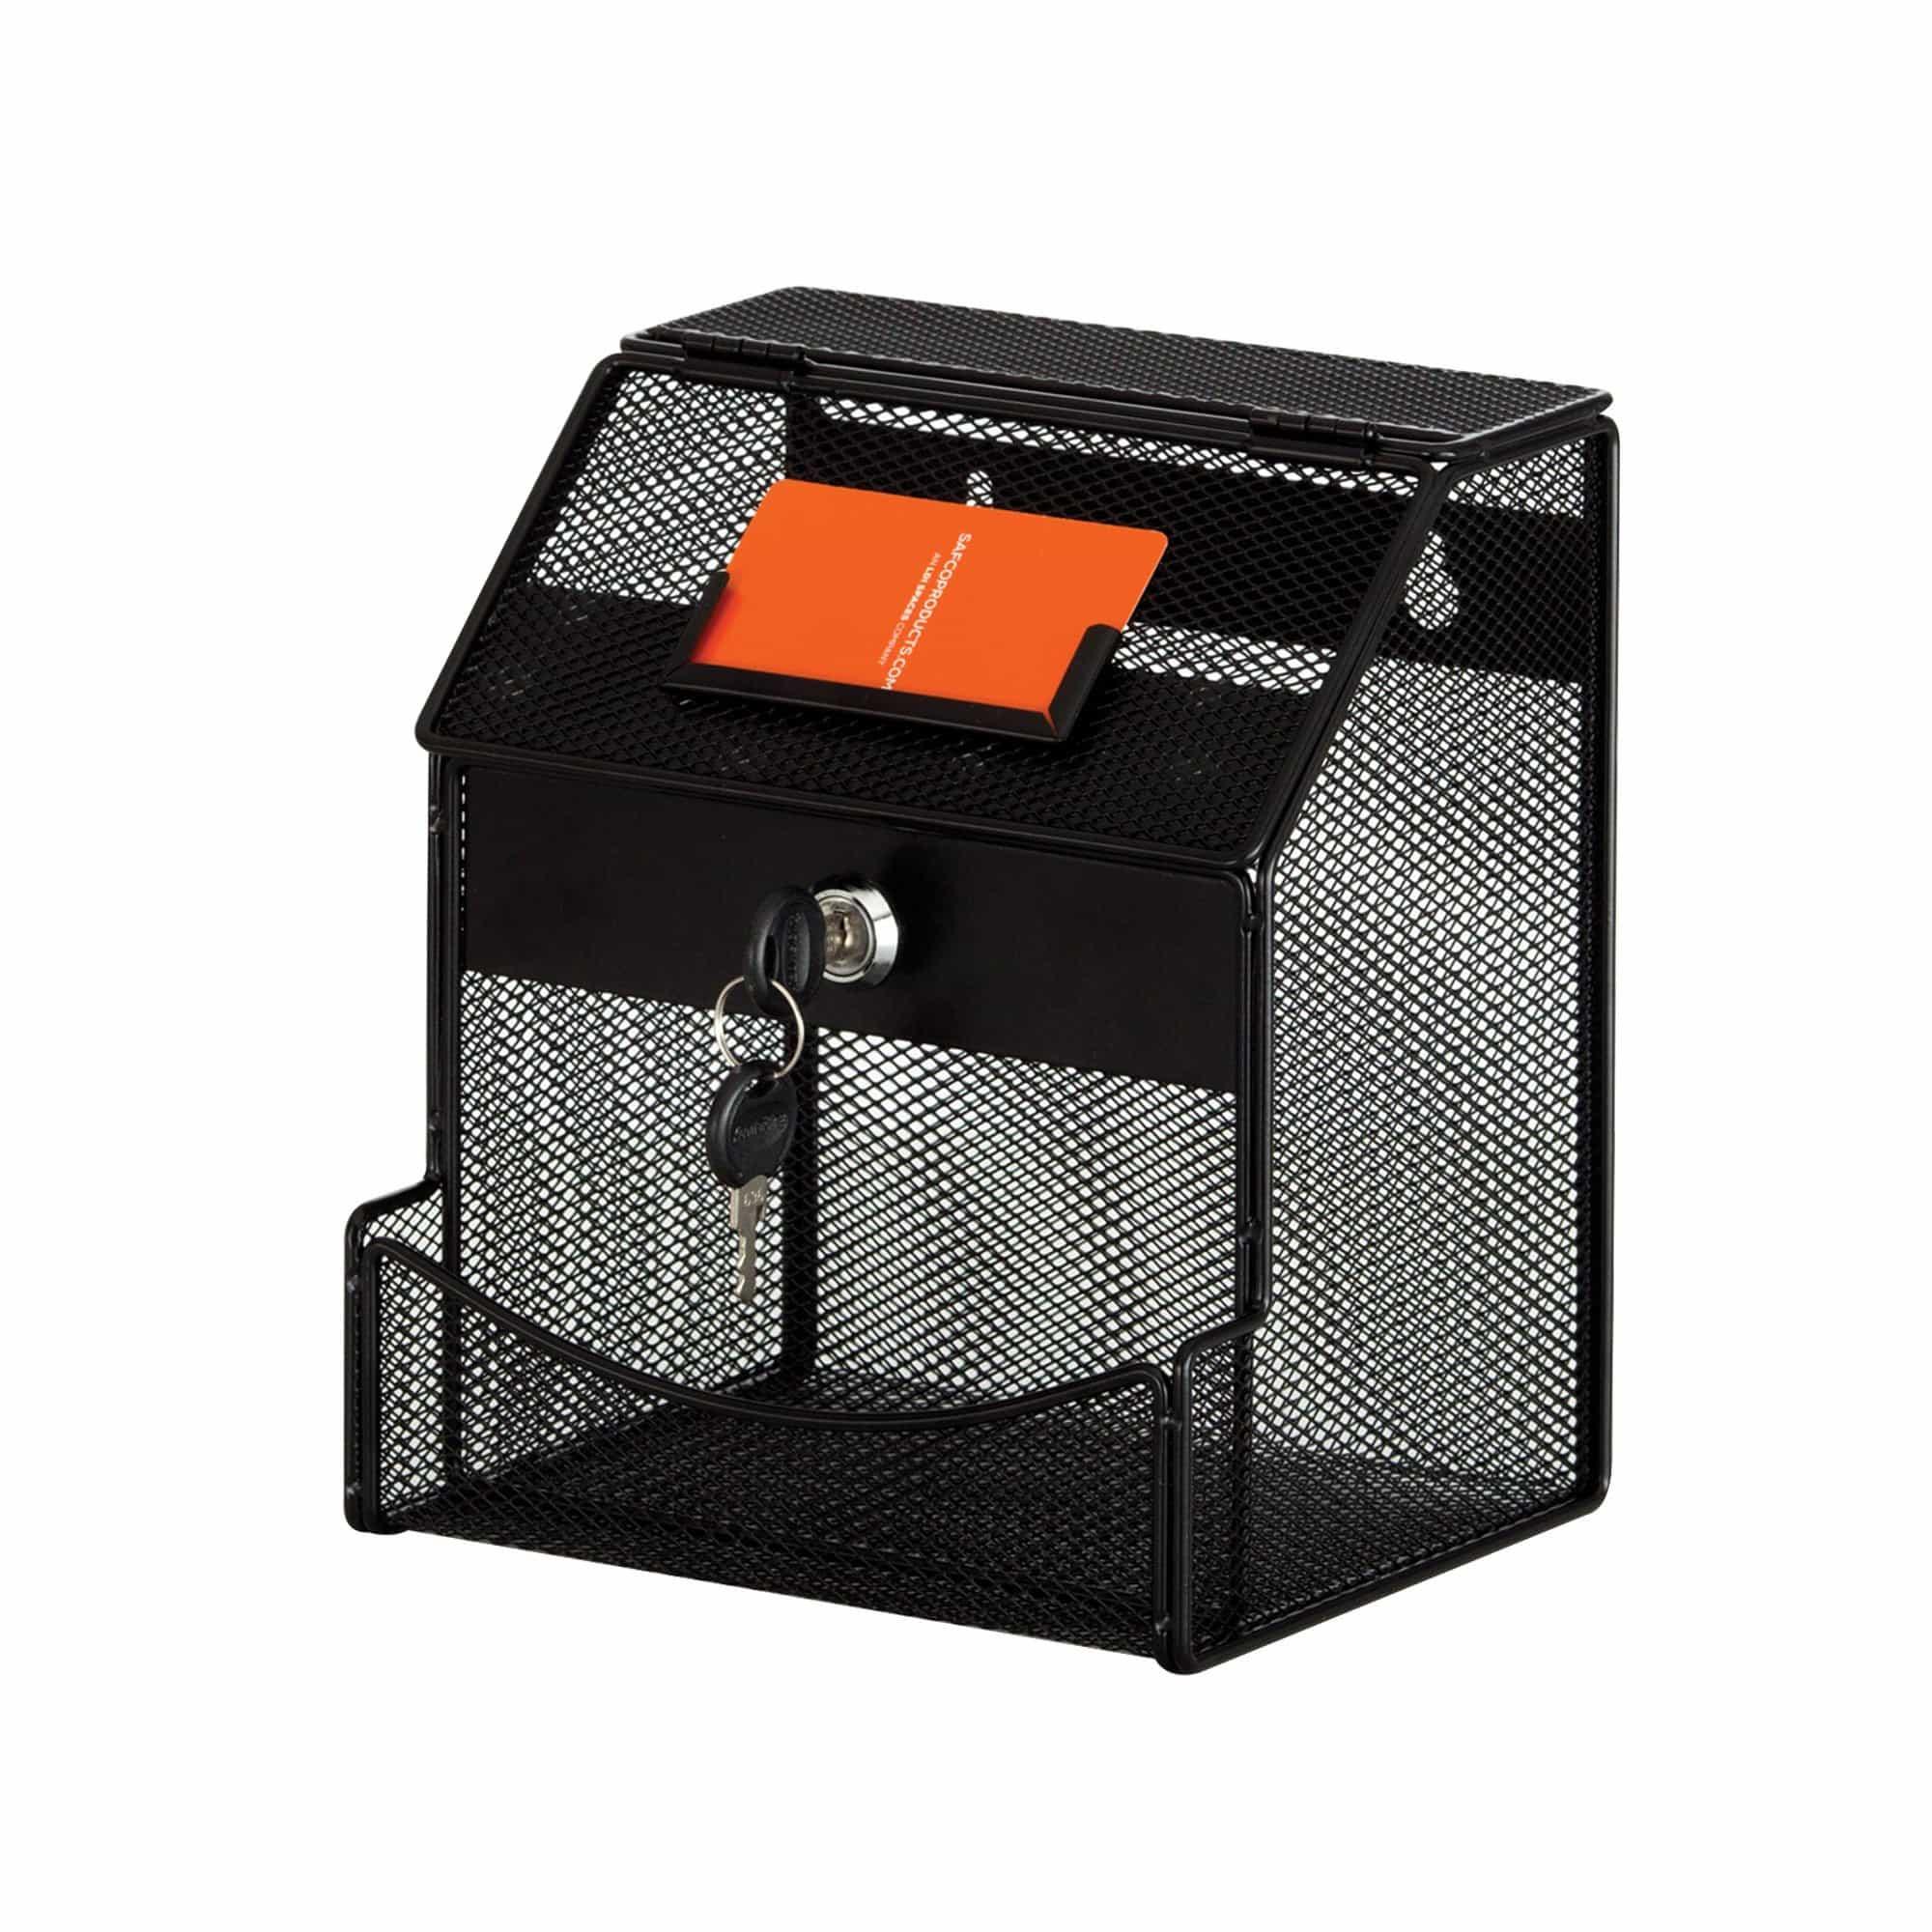 bedinhome - 4238BL black powder coat finish Onyx Mesh Collection acrylic display office drop box - Safco - Suggestion Box